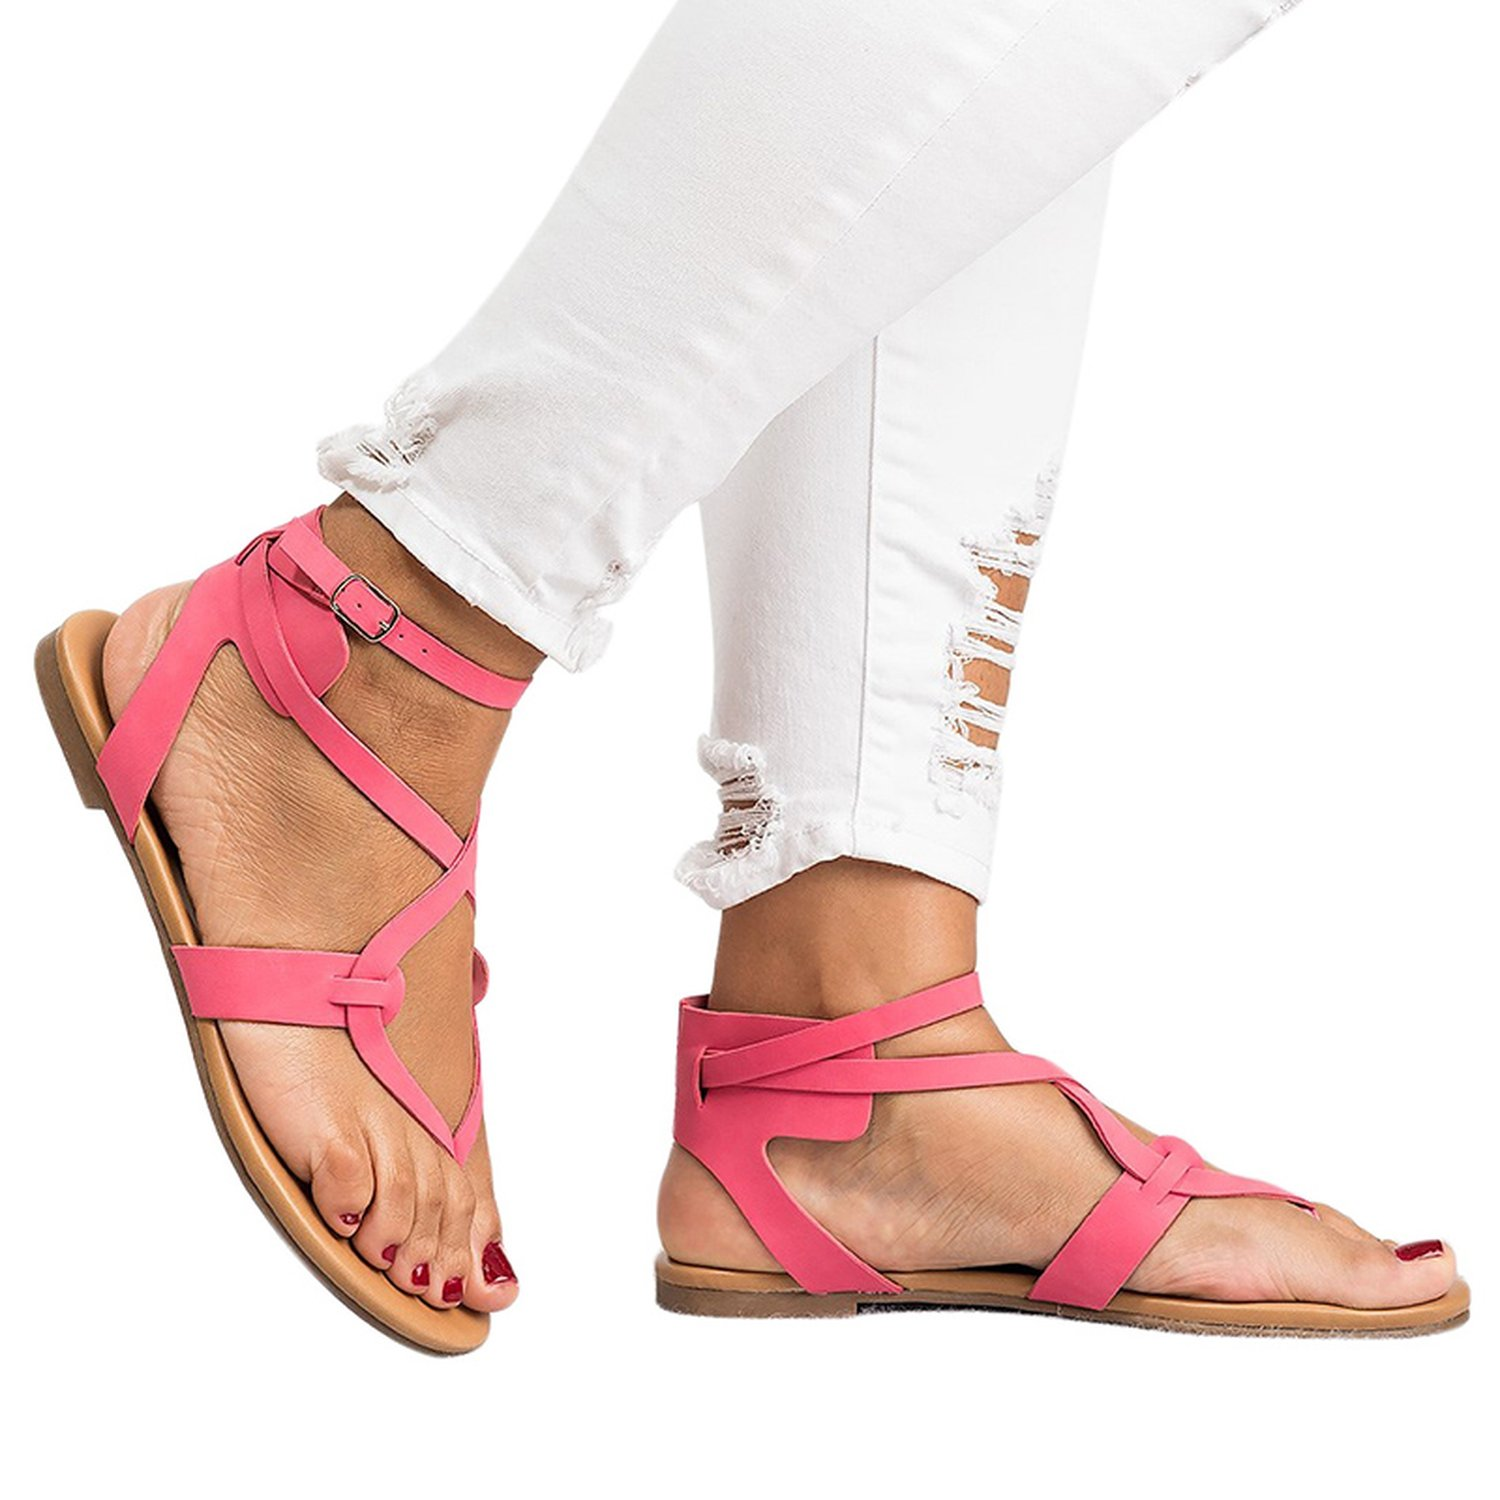 Romantic moments New Arrive Women Gladiator Sandals Summer Women Shoes Plus Size 35-43 Flats Sandals B07DLSV7SY 8 B(M) US|Red